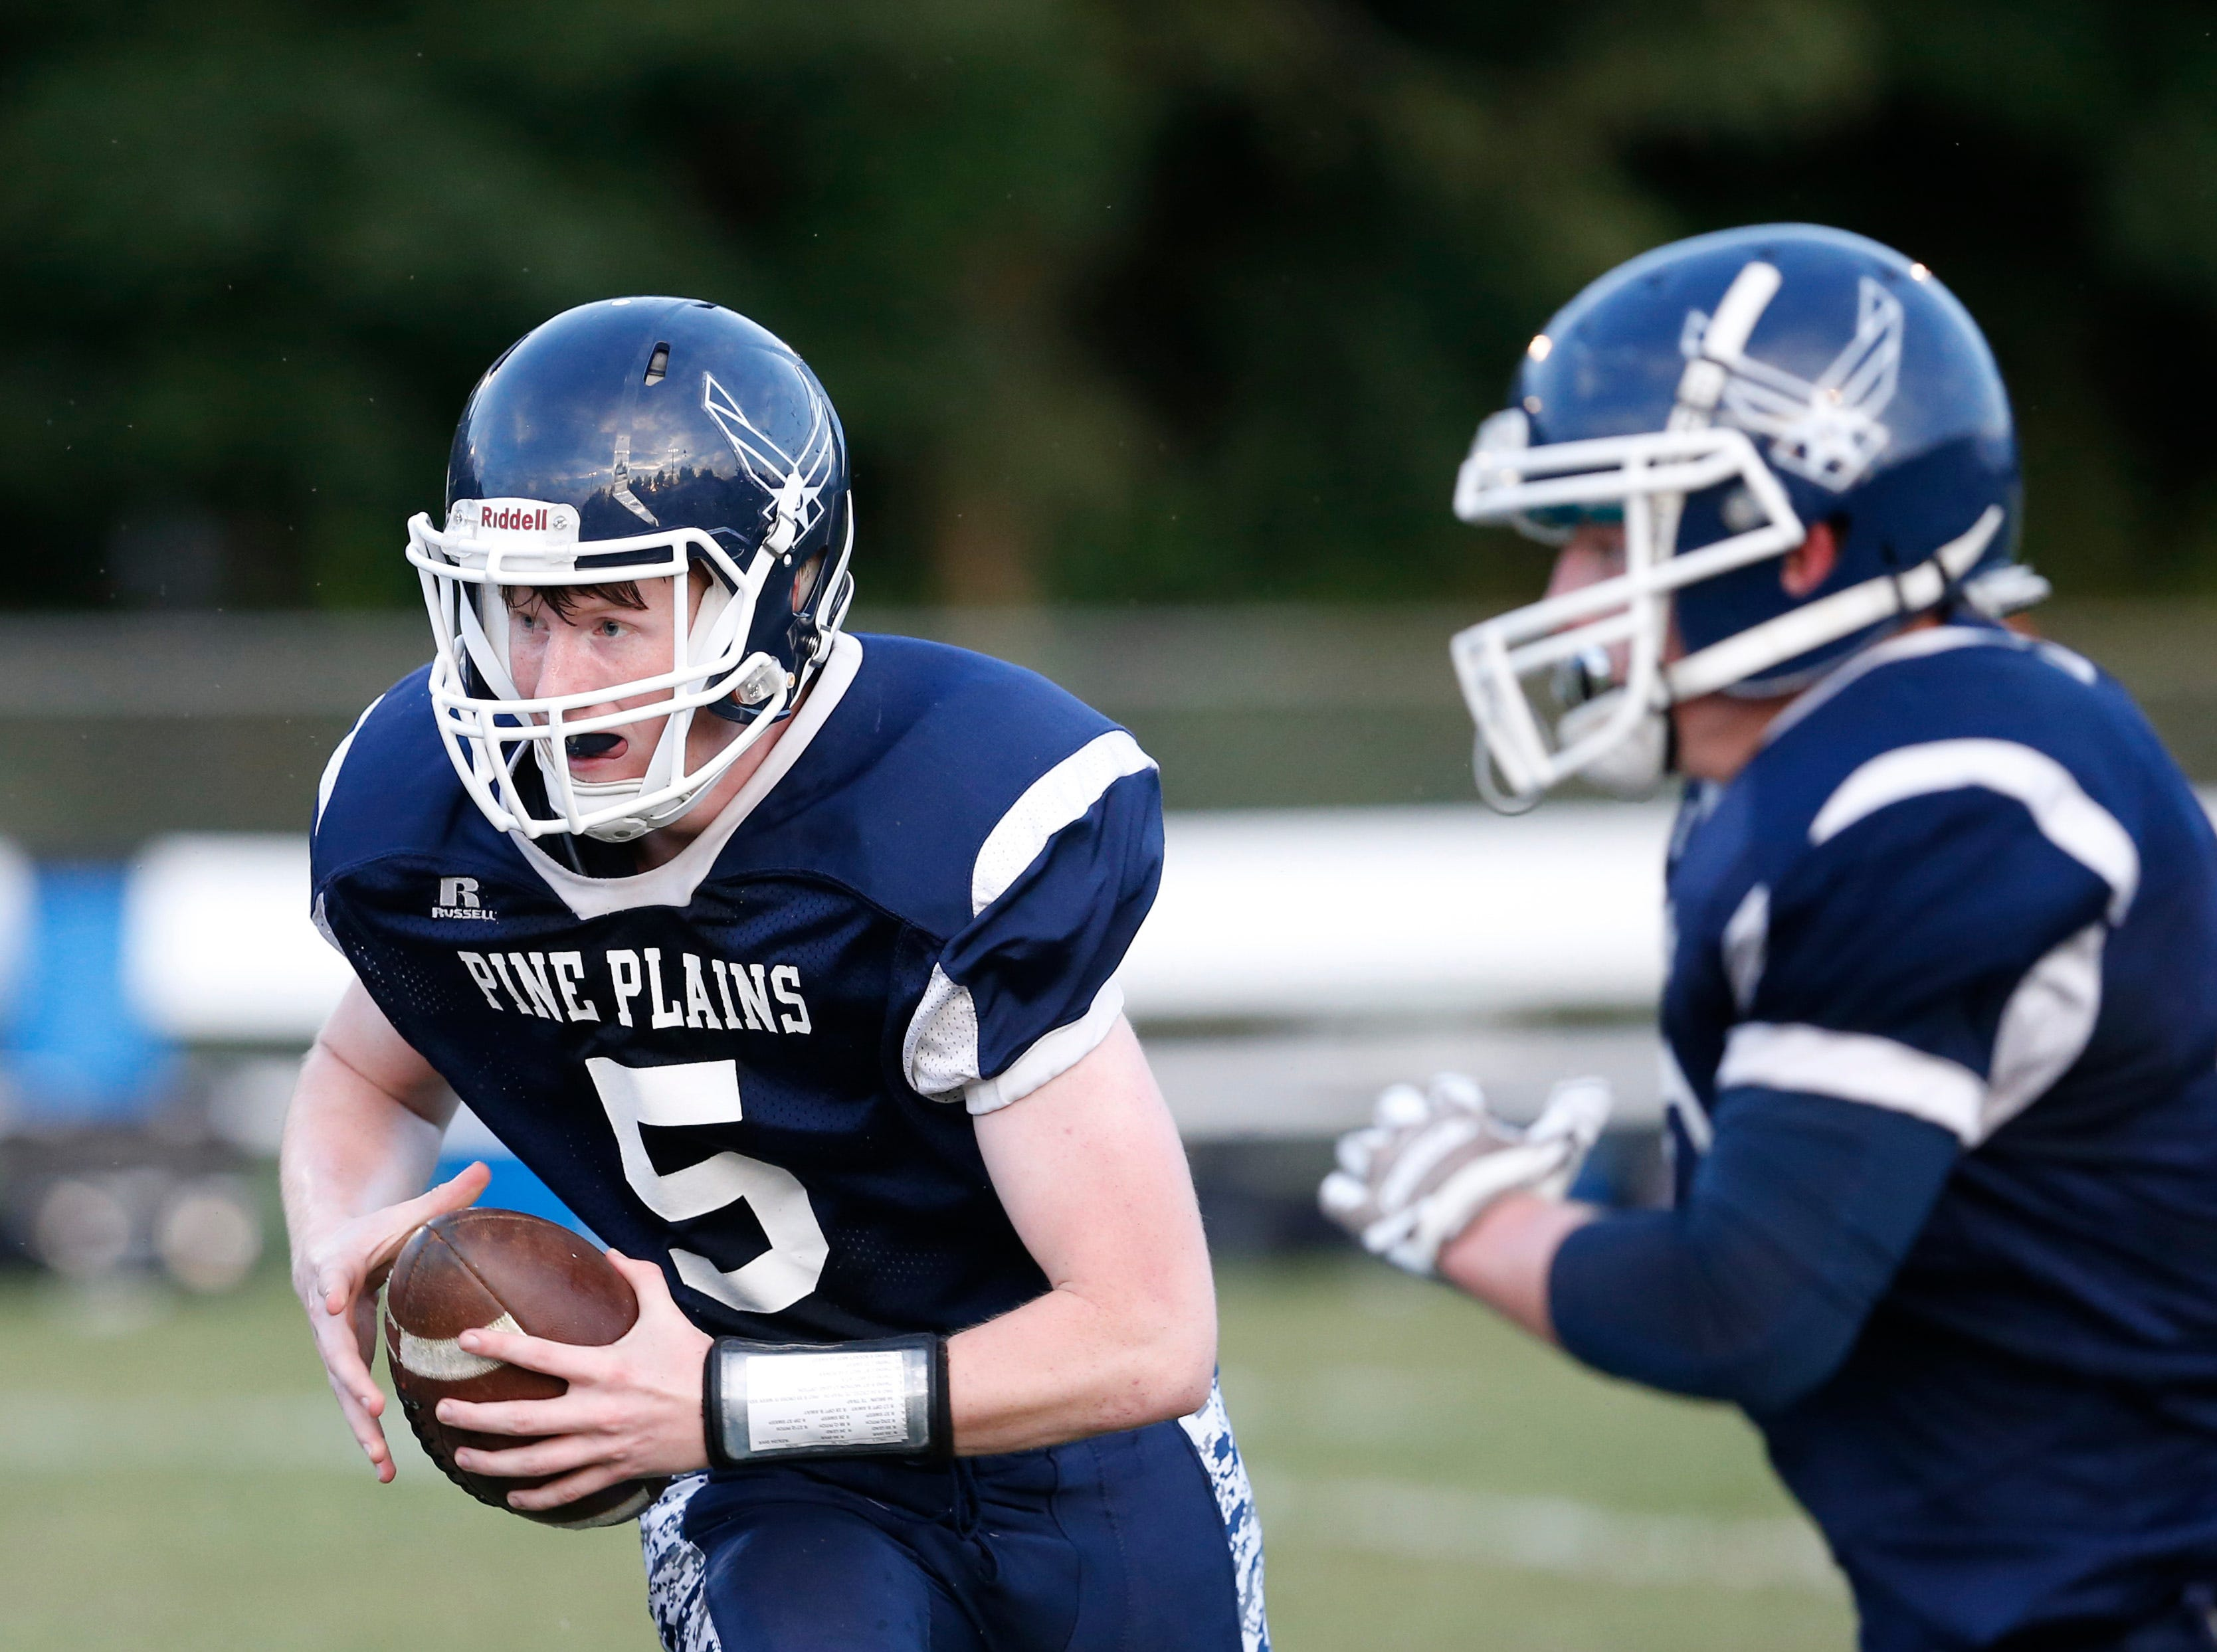 Pine Plains' Andrew Holsopple carries the ball as Kyle Stracher covers his path during Friday's home gam versus Roscoe on September 7, 2018.